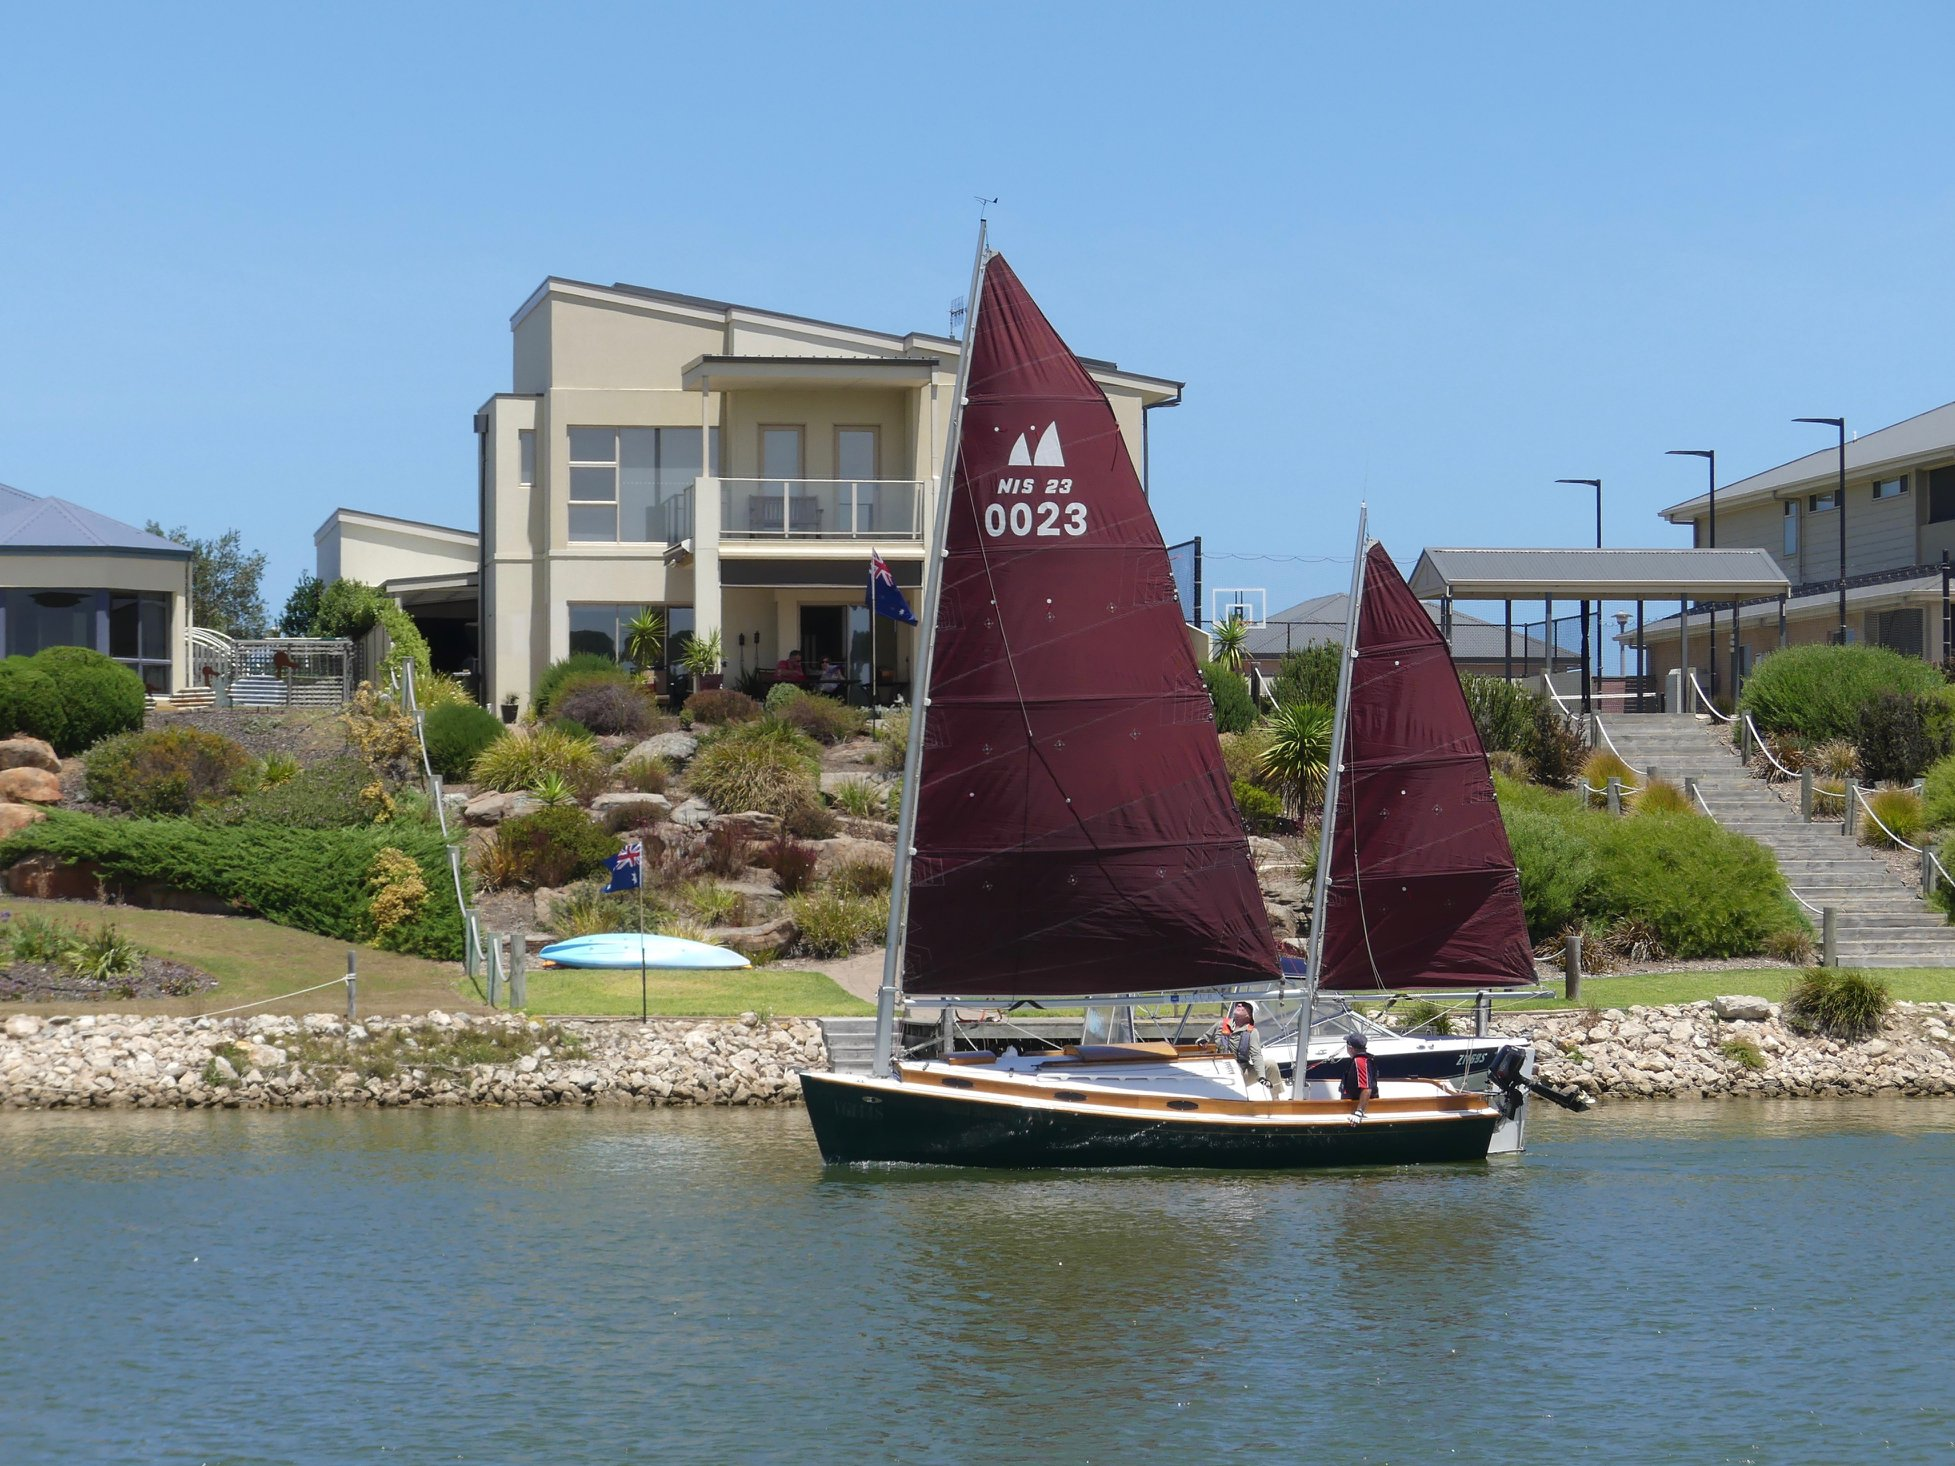 Boats-come-in-all-shapes-and-sizes---Chris-Caffin-pic